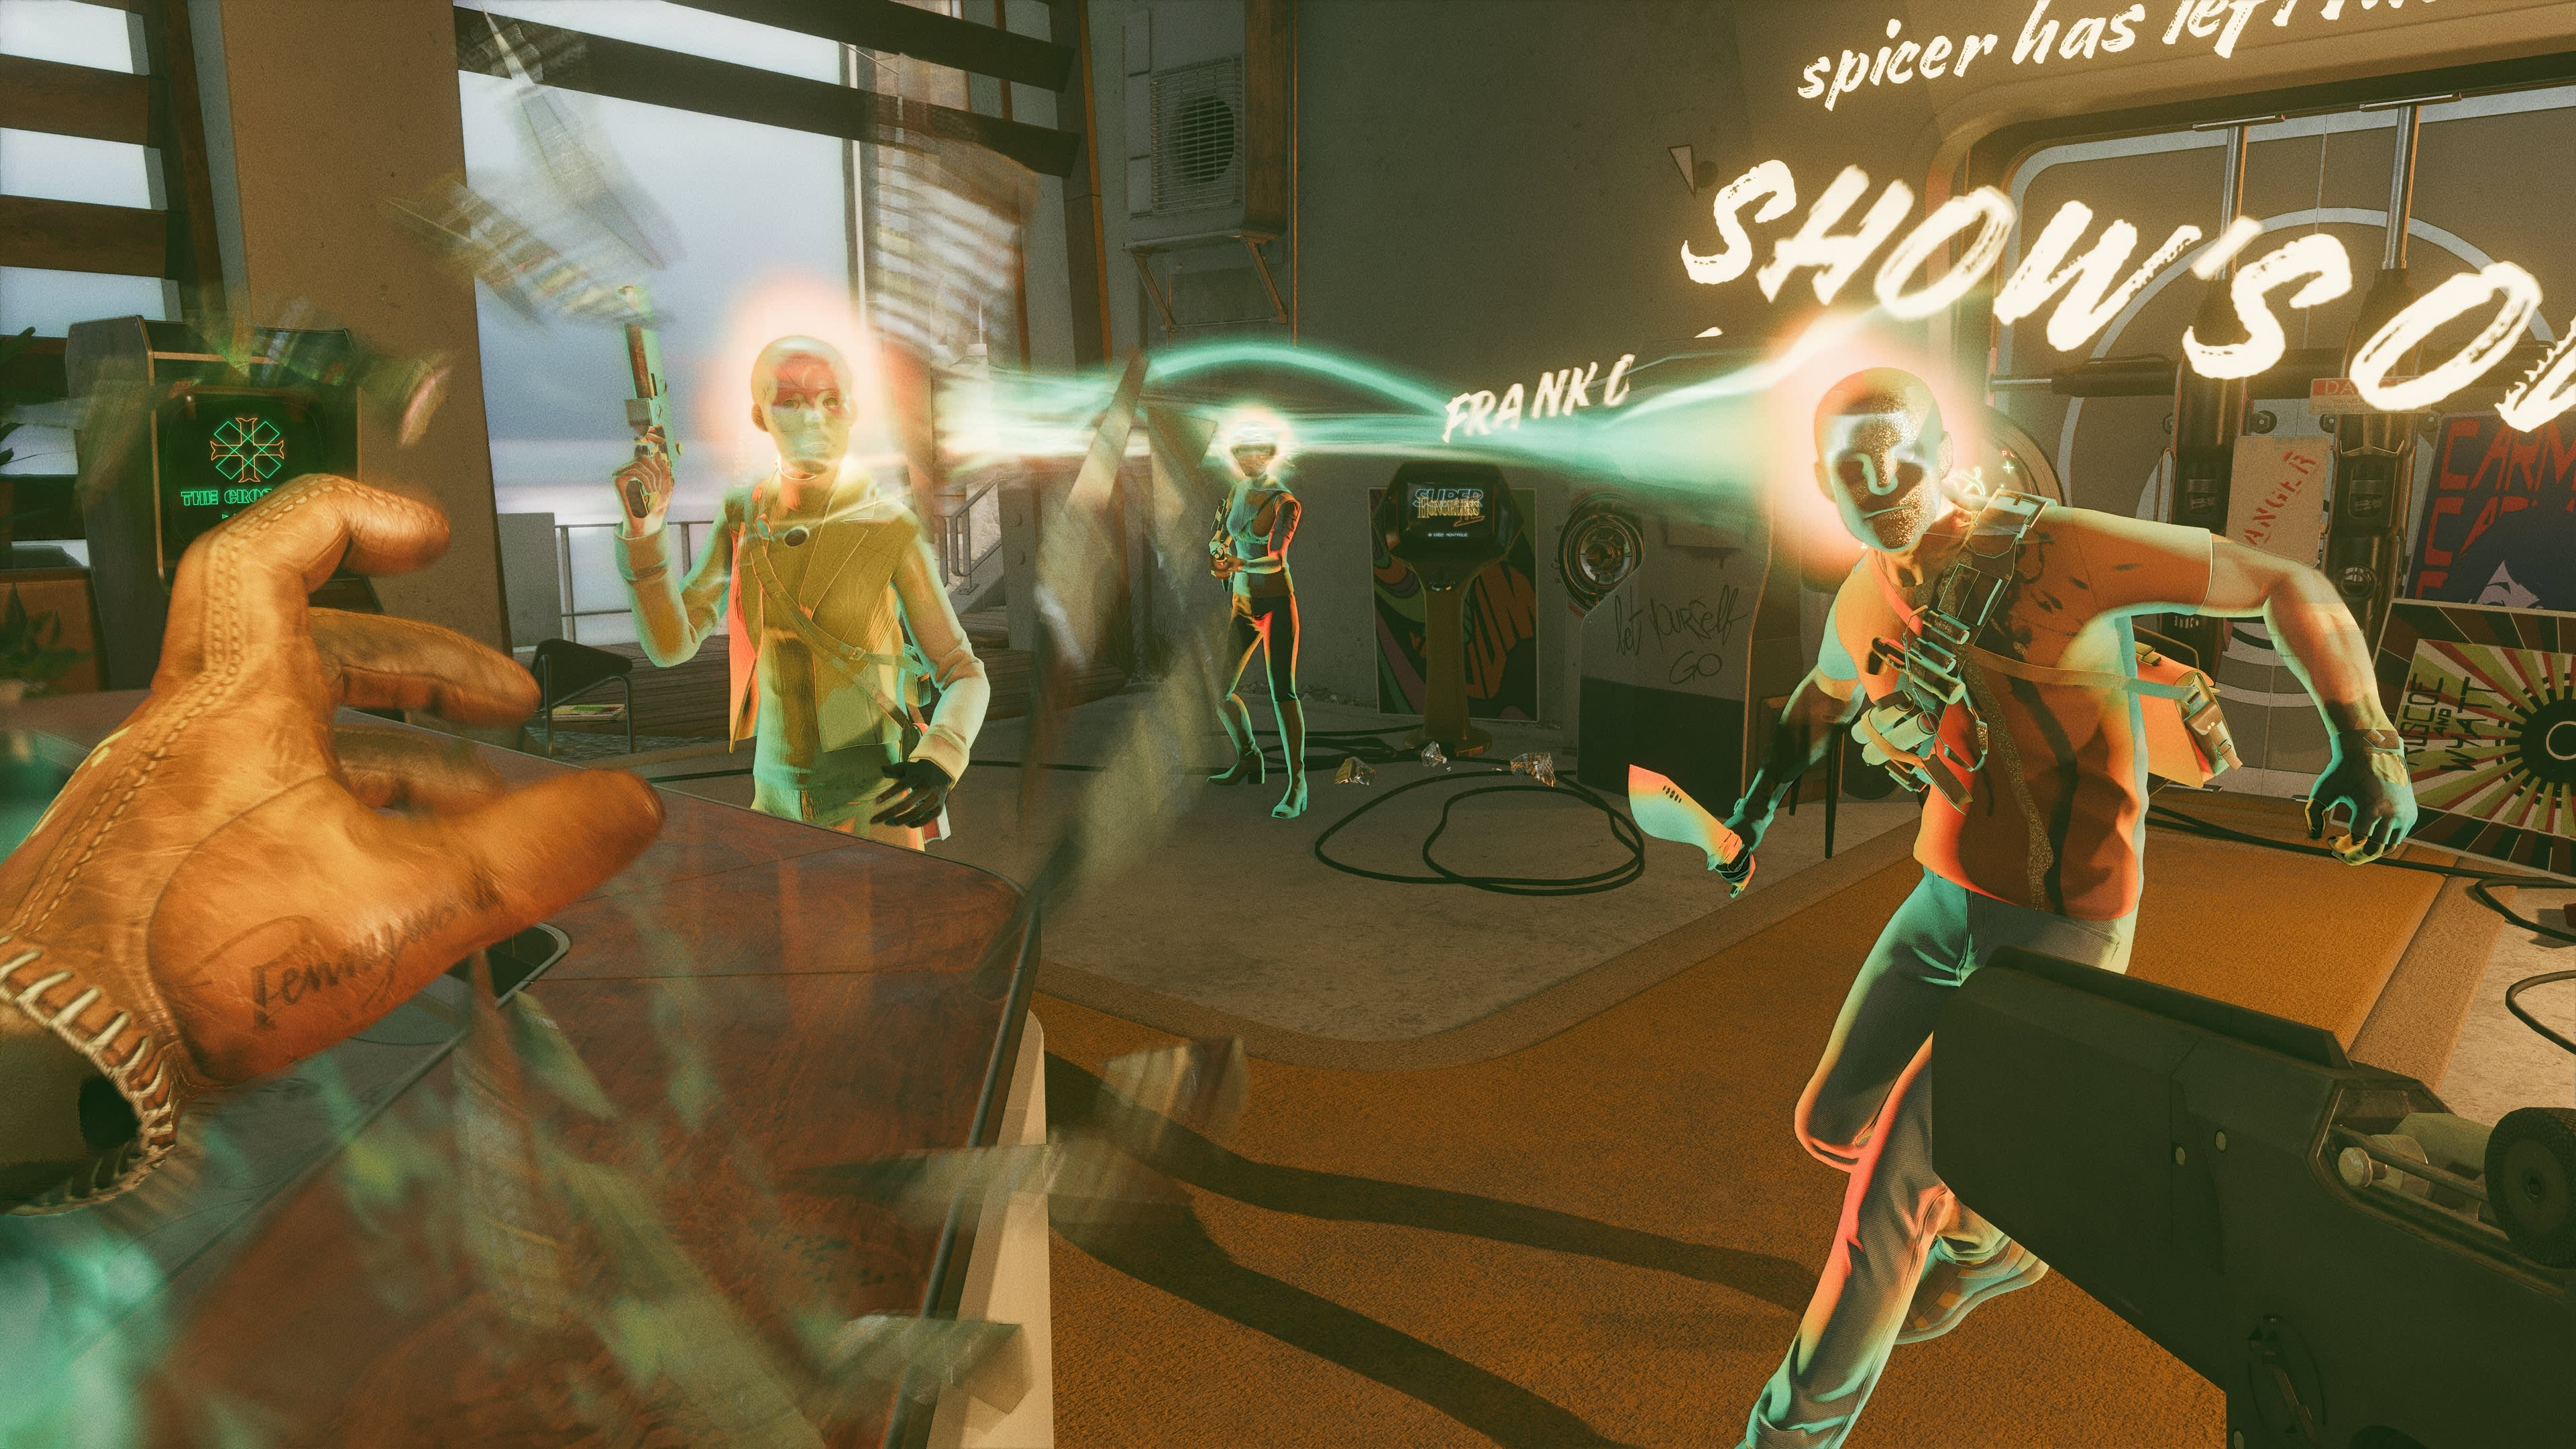 A first-person perspective screenshot of Deathloop. Three hostile enemies are connected by a glowing line. The text 'Shows Over' glows on a wall behind them.